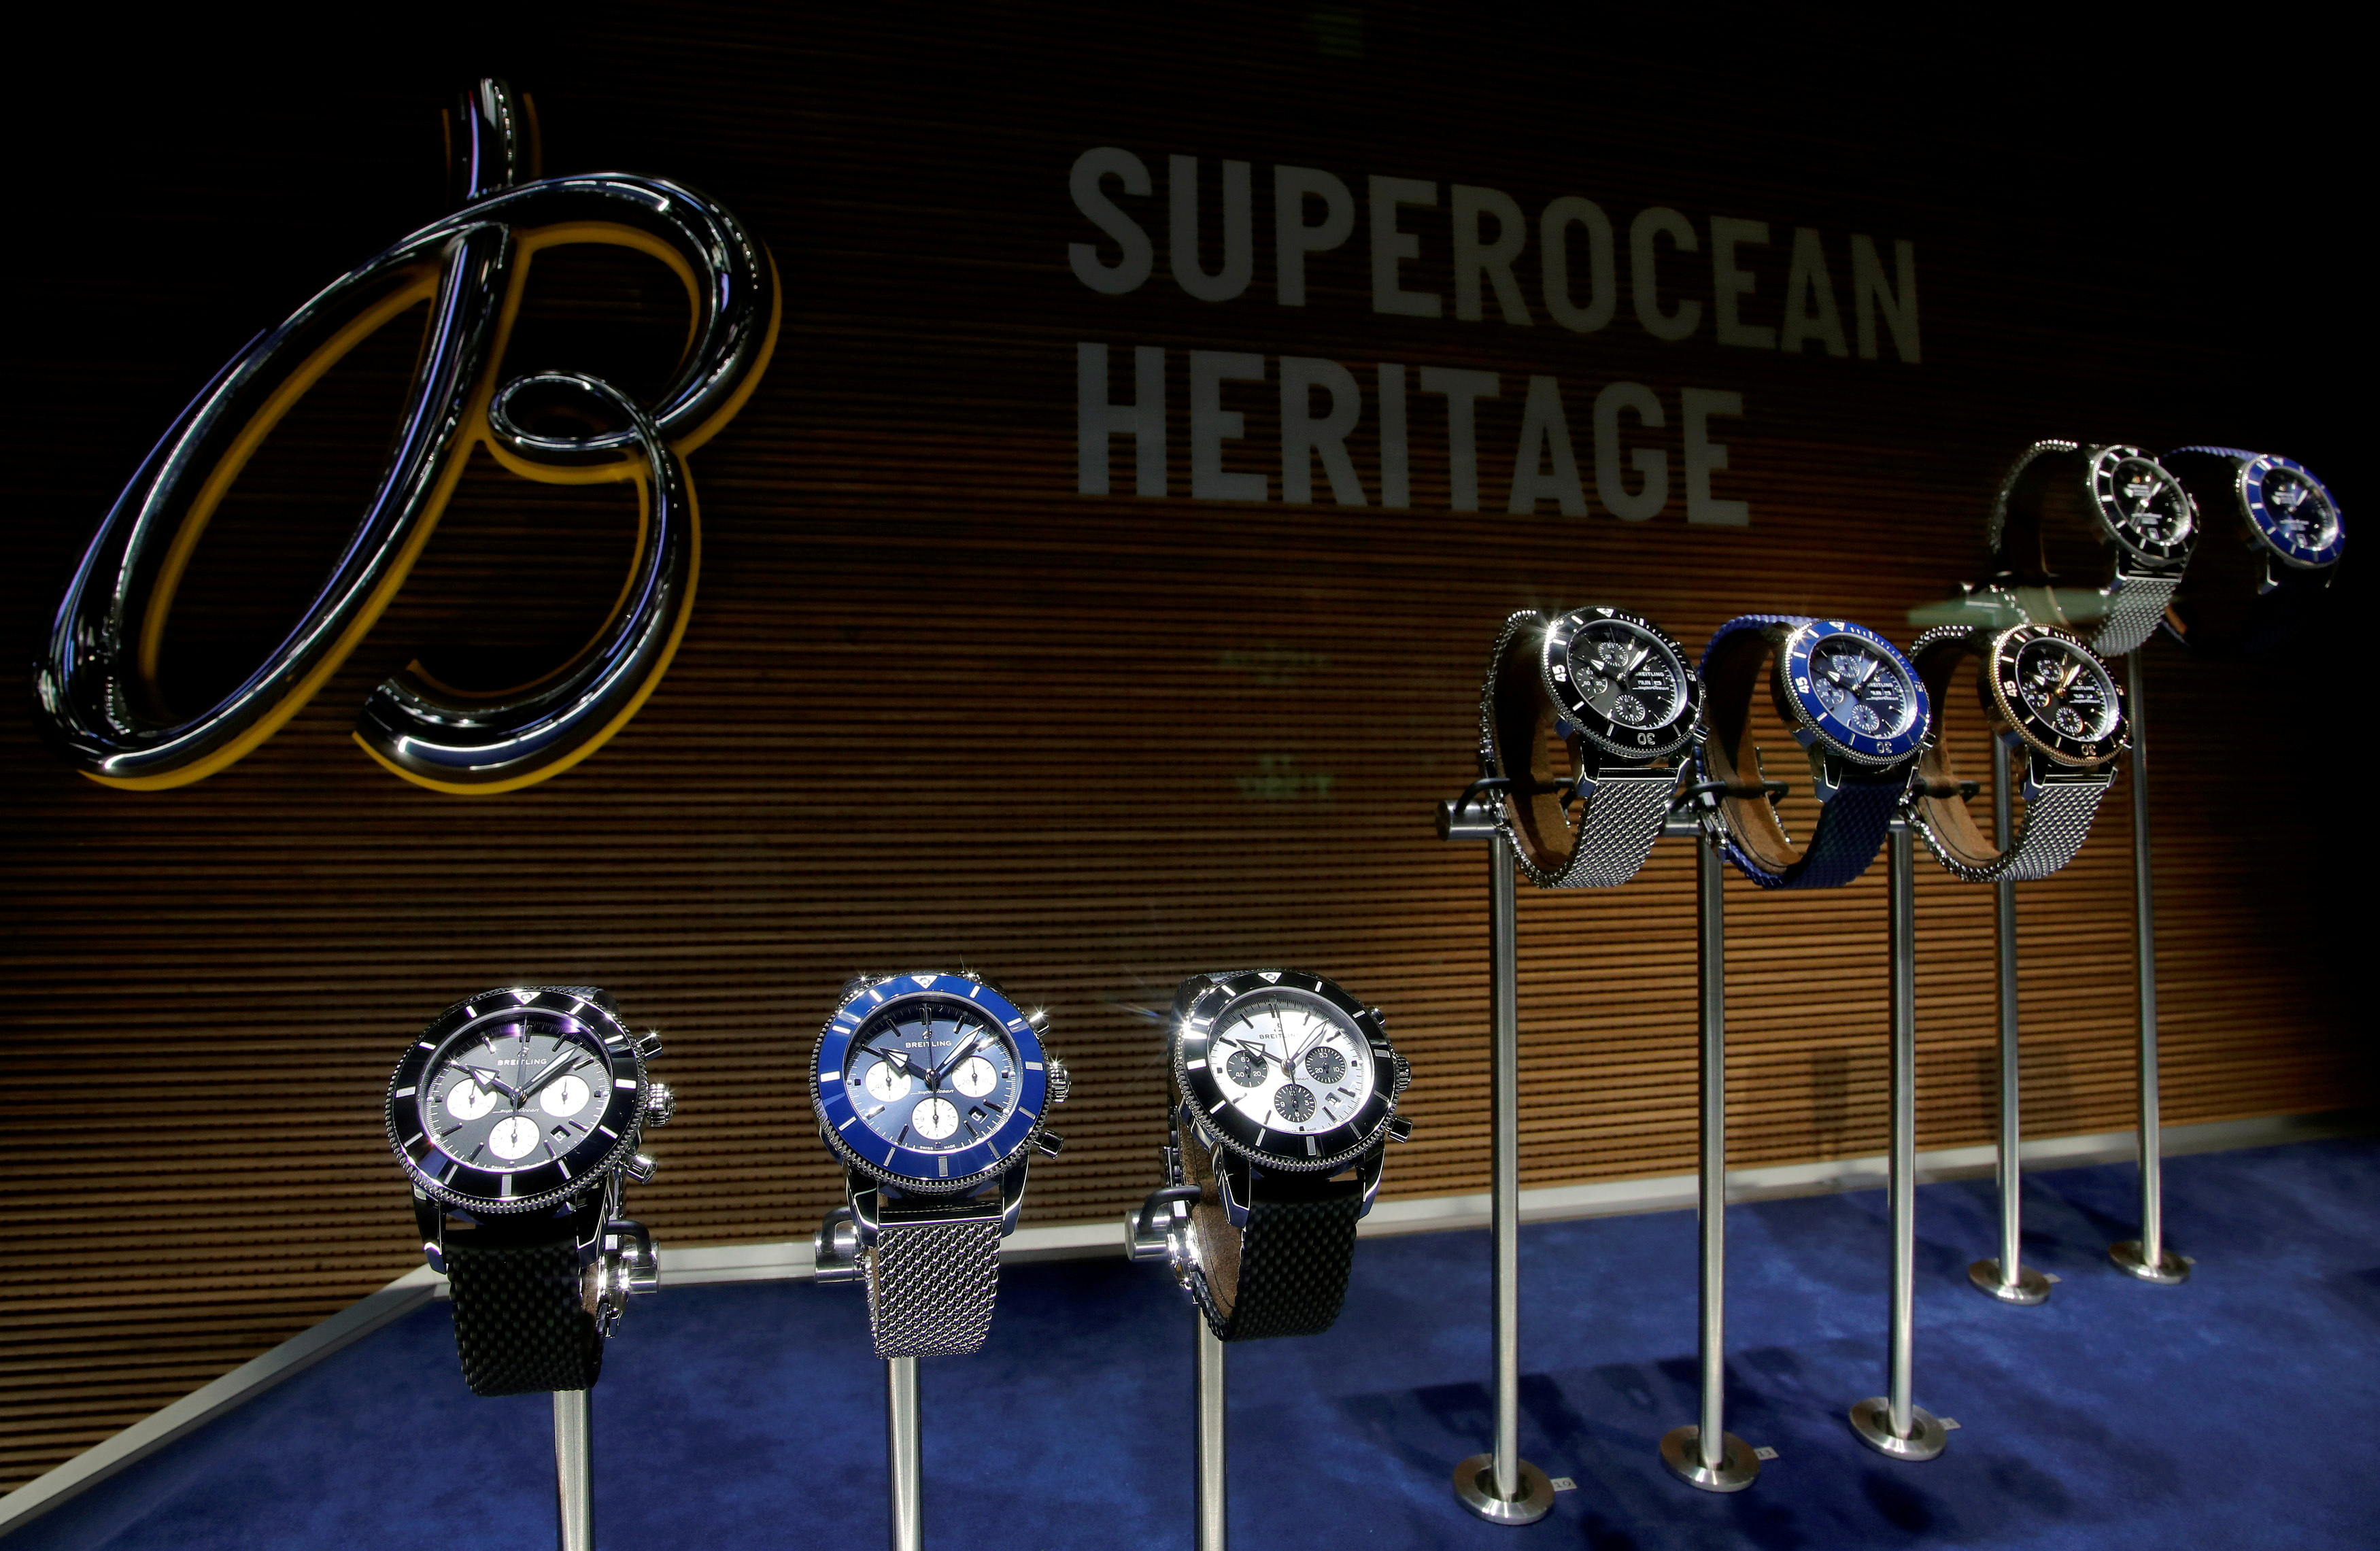 Superocean Heritage watches of Swiss watch manufacturer Breitling are displayed at the Baselworld watch and jewellery fair in Basel, Switzerland, March 21, 2018.  REUTERS/Arnd Wiegmann/File Photo